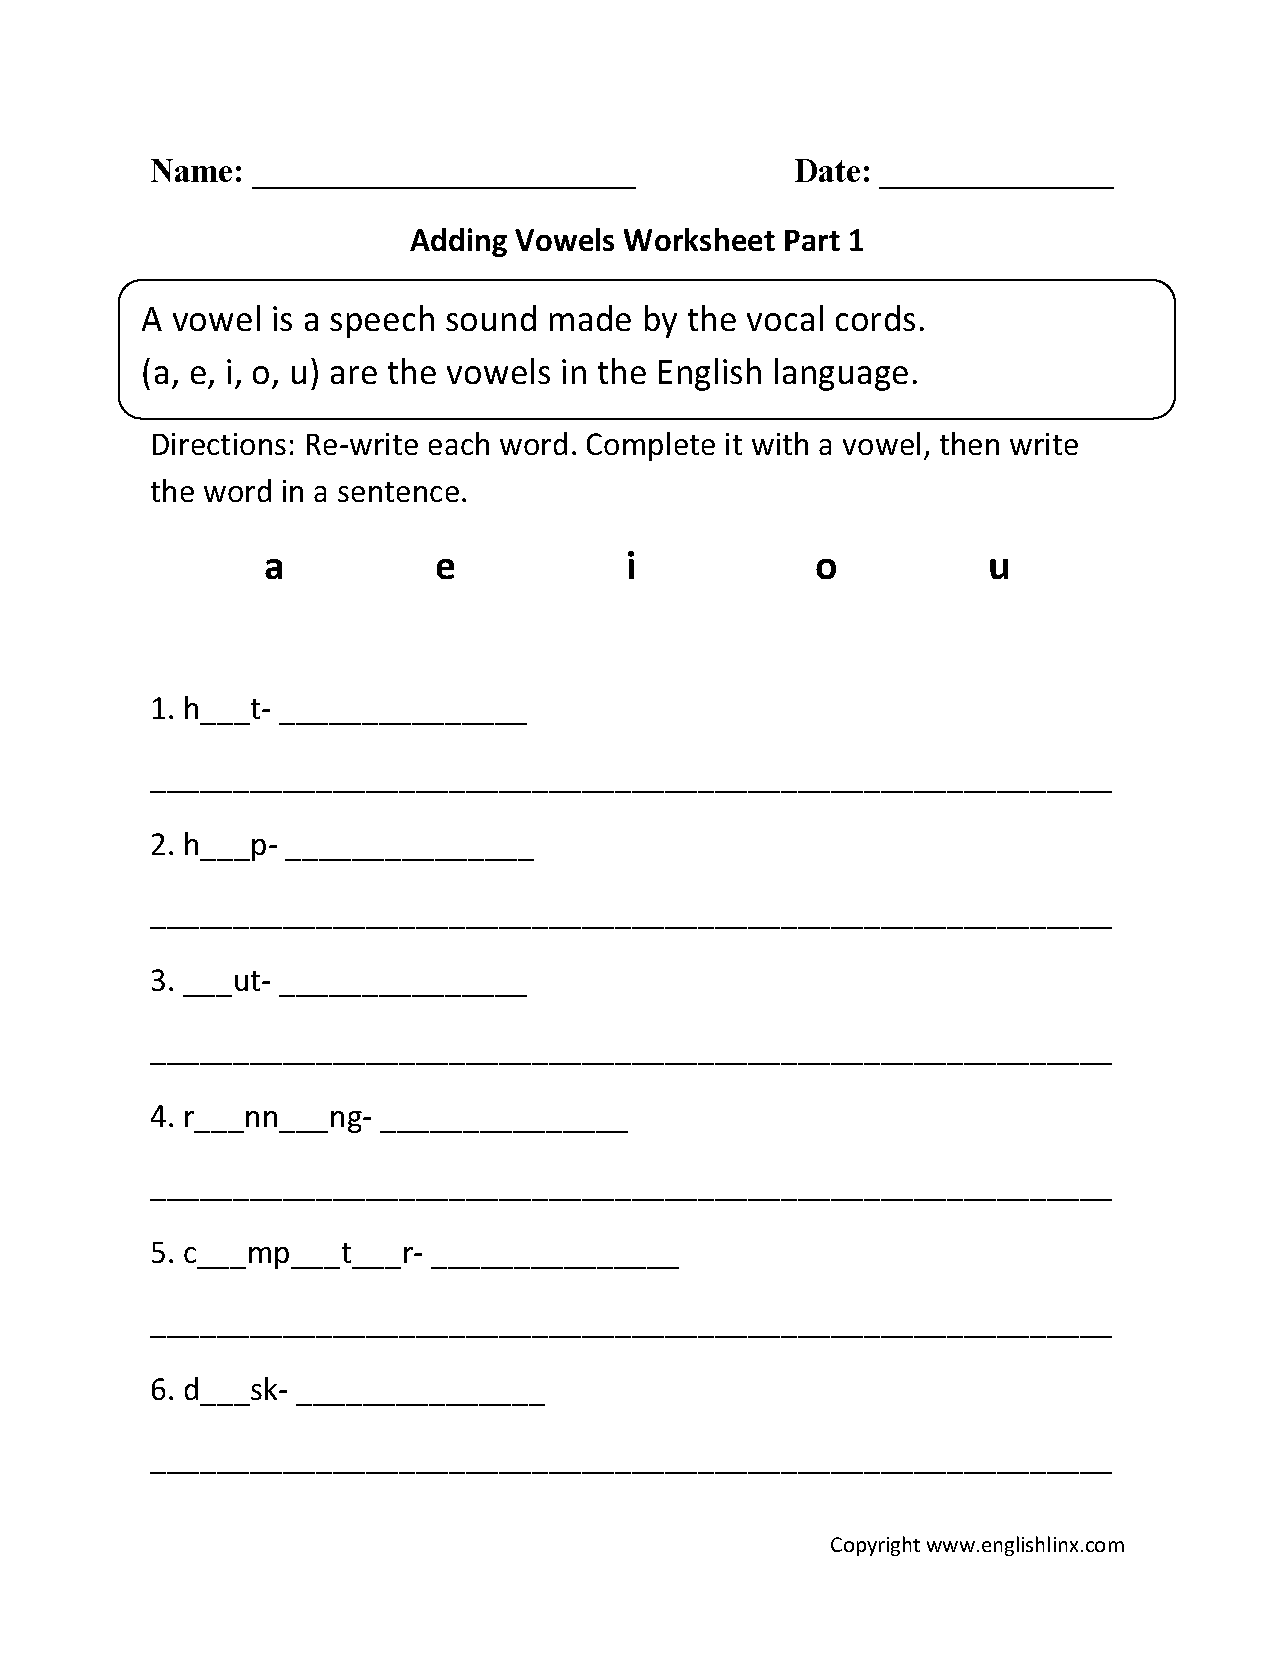 Adding Vowels Worksheet Part 1